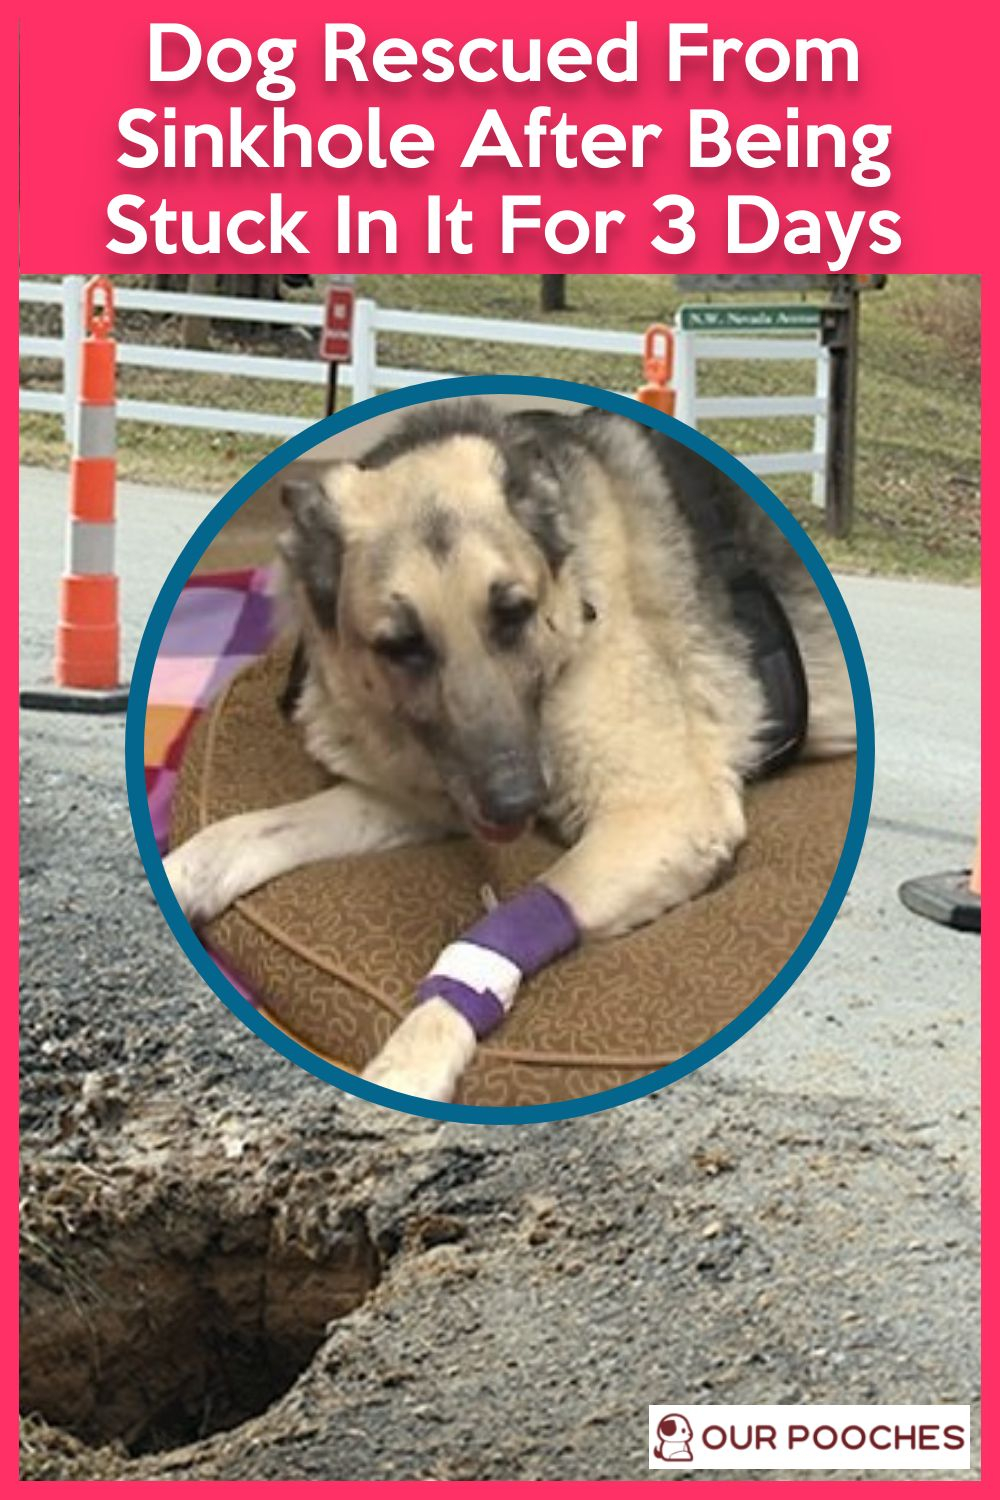 Dog Rescued From Sinkhole After Being Stuck In It For 3 Days